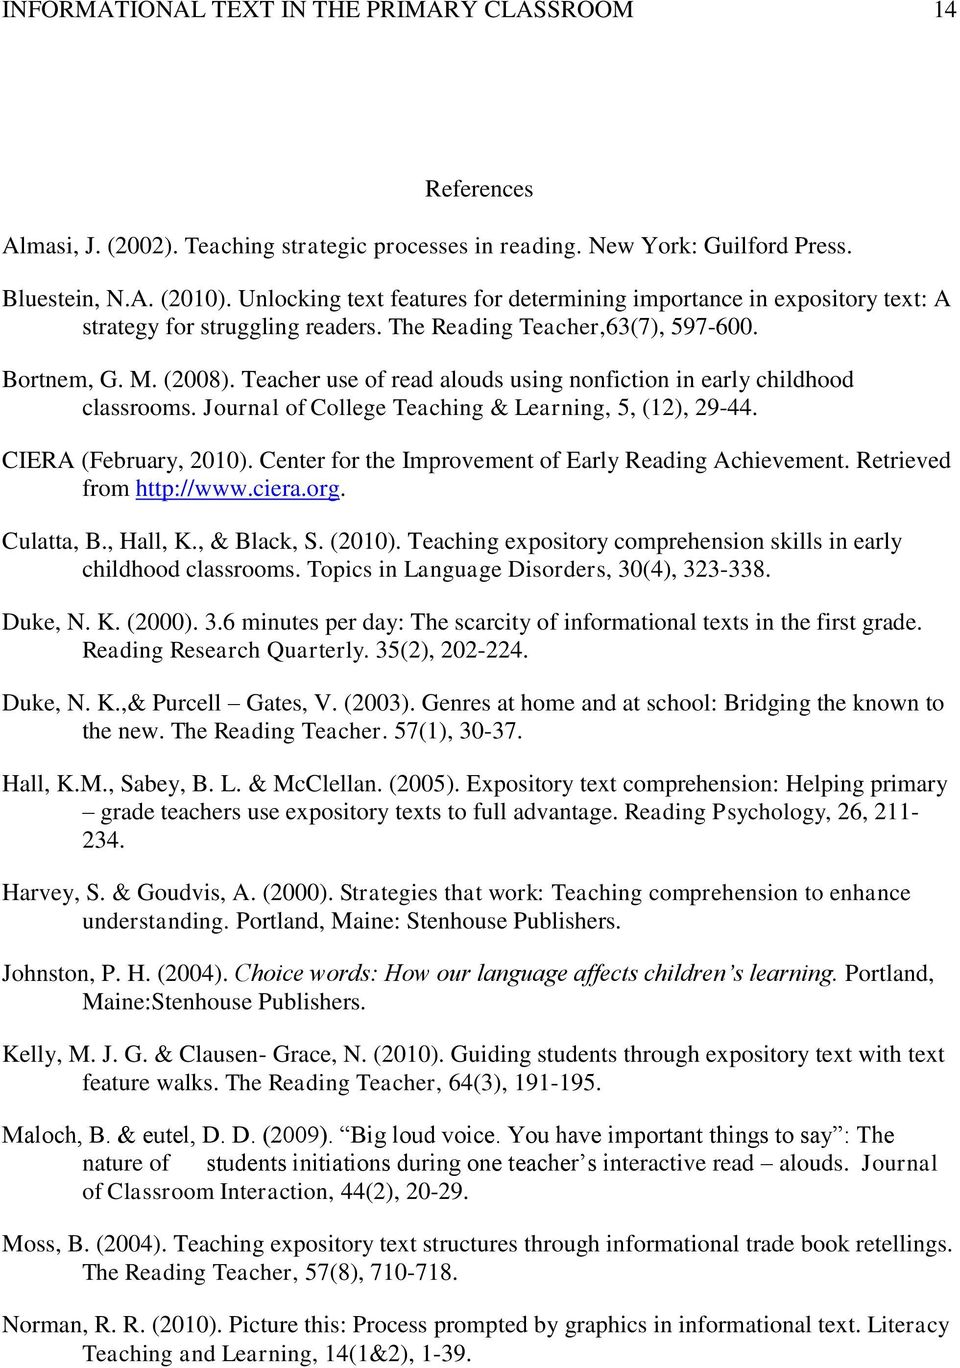 Teacher use of read alouds using nonfiction in early childhood classrooms. Journal of College Teaching & Learning, 5, (12), 29-44. CIERA (February, 2010).